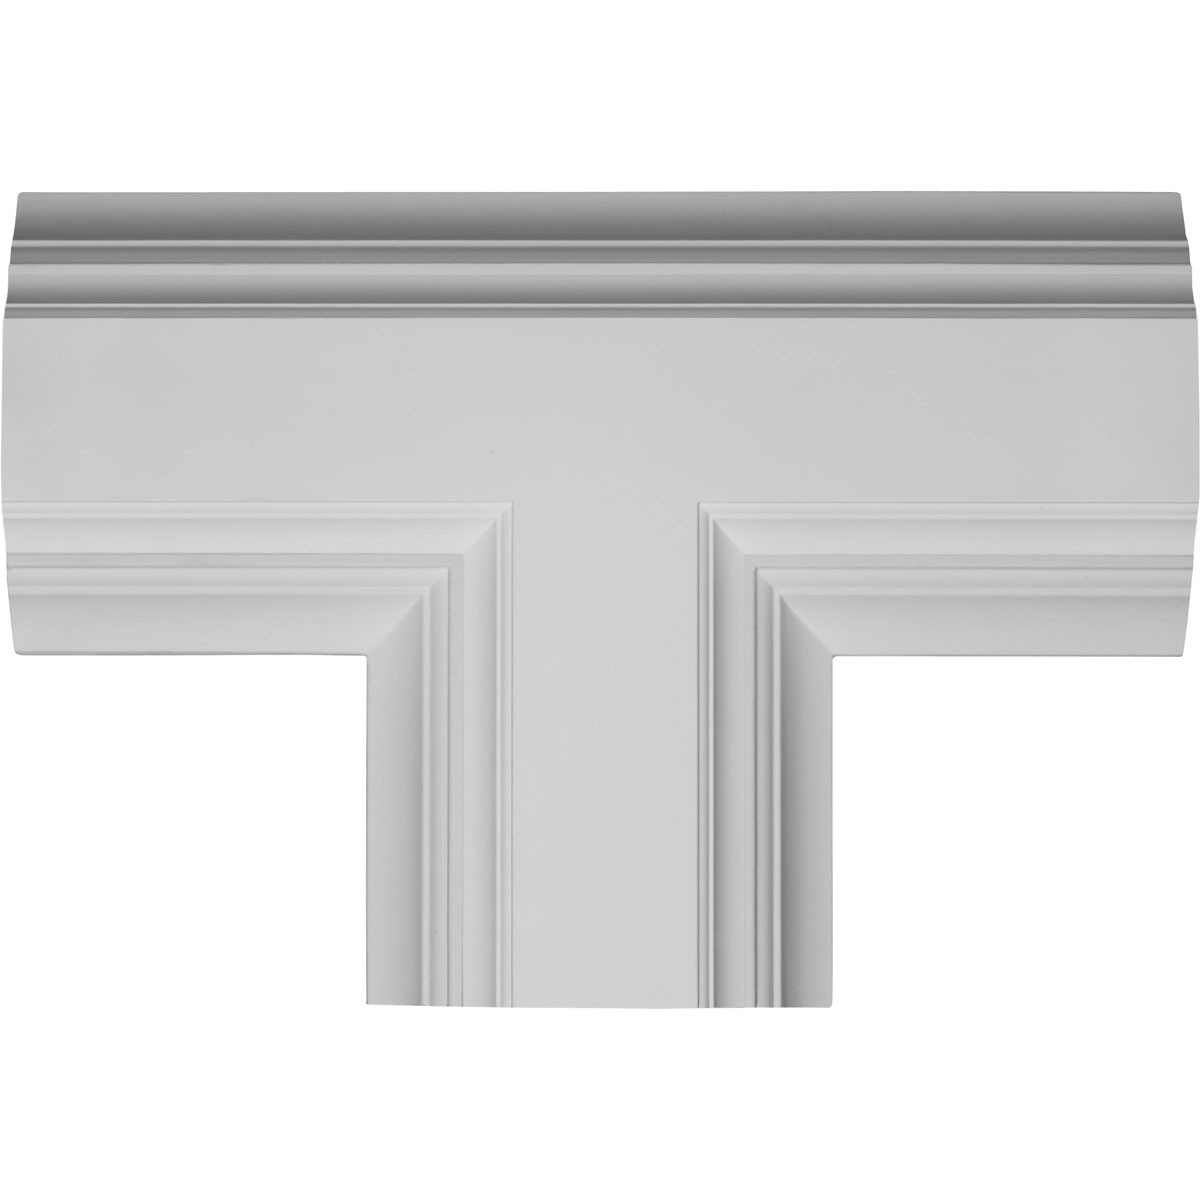 "EM-CC08ITE04X14X20DE - 14""W x 4""P x 20""L Inner Tee for 8"" Deluxe Coffered Ceiling System (Kit)"